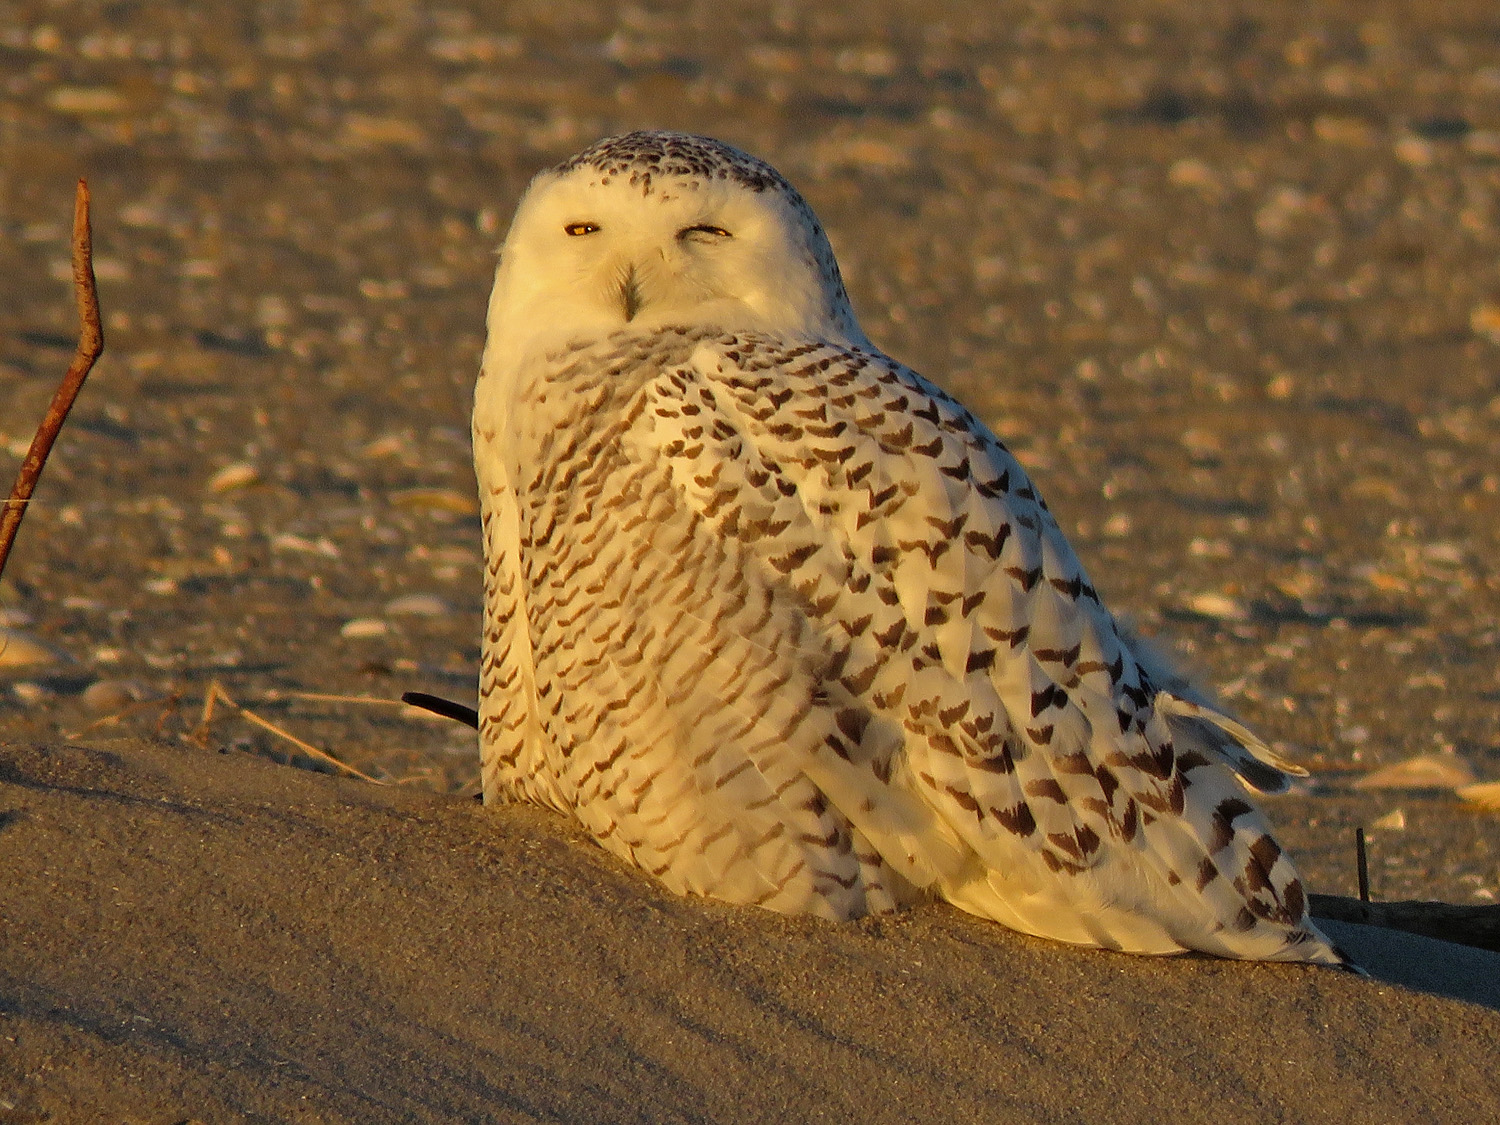 I spent two beautiful hours sitting far away from this snowy owl on a beach in Queens on December 4, 2018. I saw only one other person, and we both took joy that this bird chose to spend time in New York! Thank goodness for a nice zoom lens.